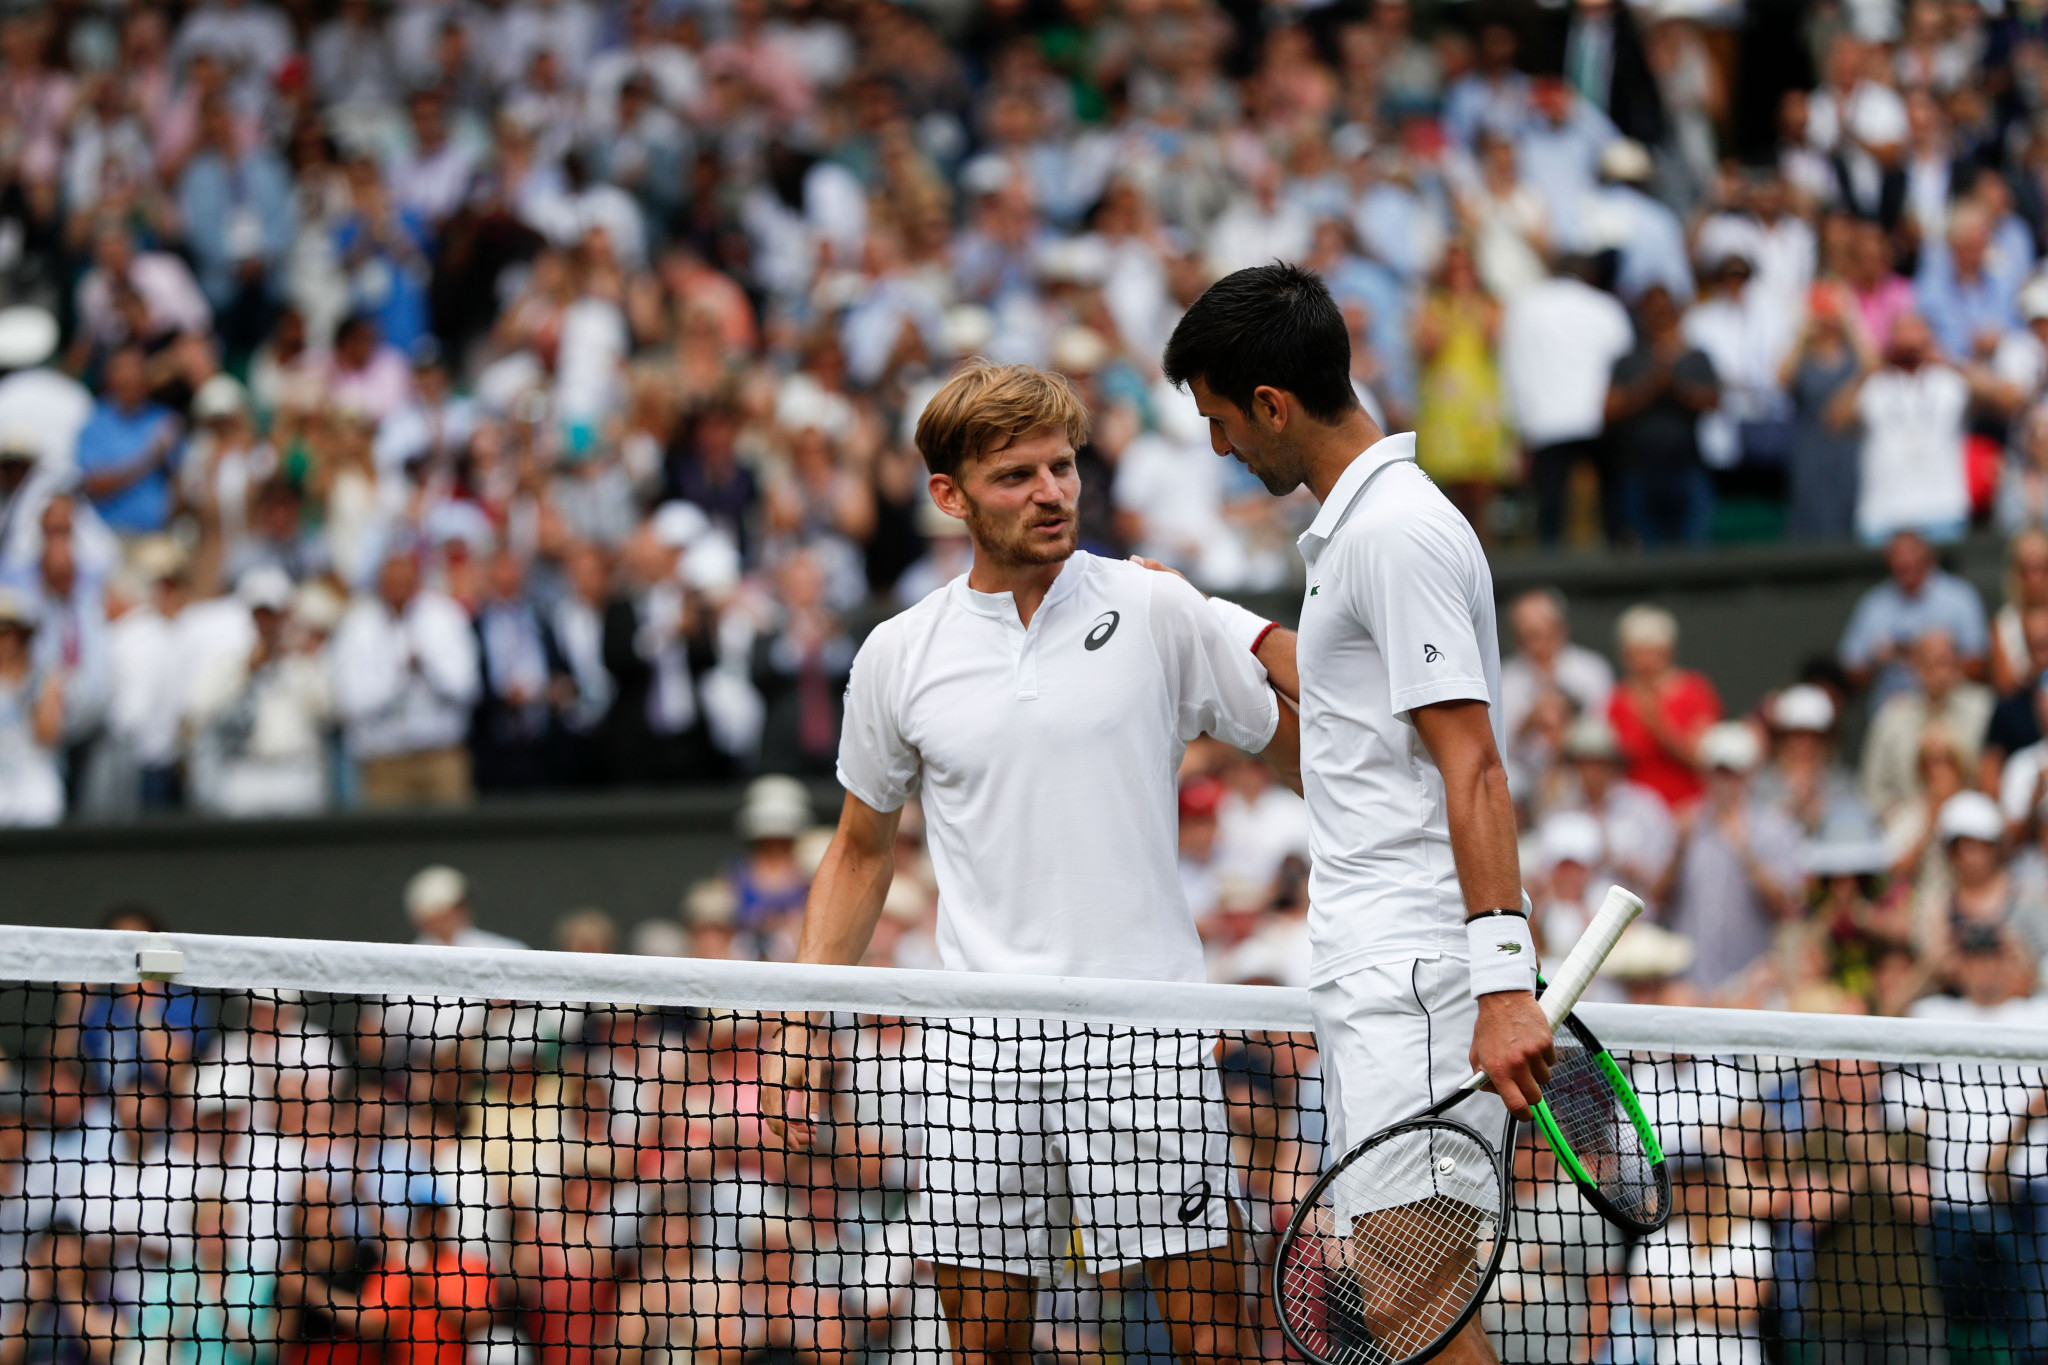 Star-studded Wimbledon semi-final line-up as Djokovic, Federer and Nadal advance